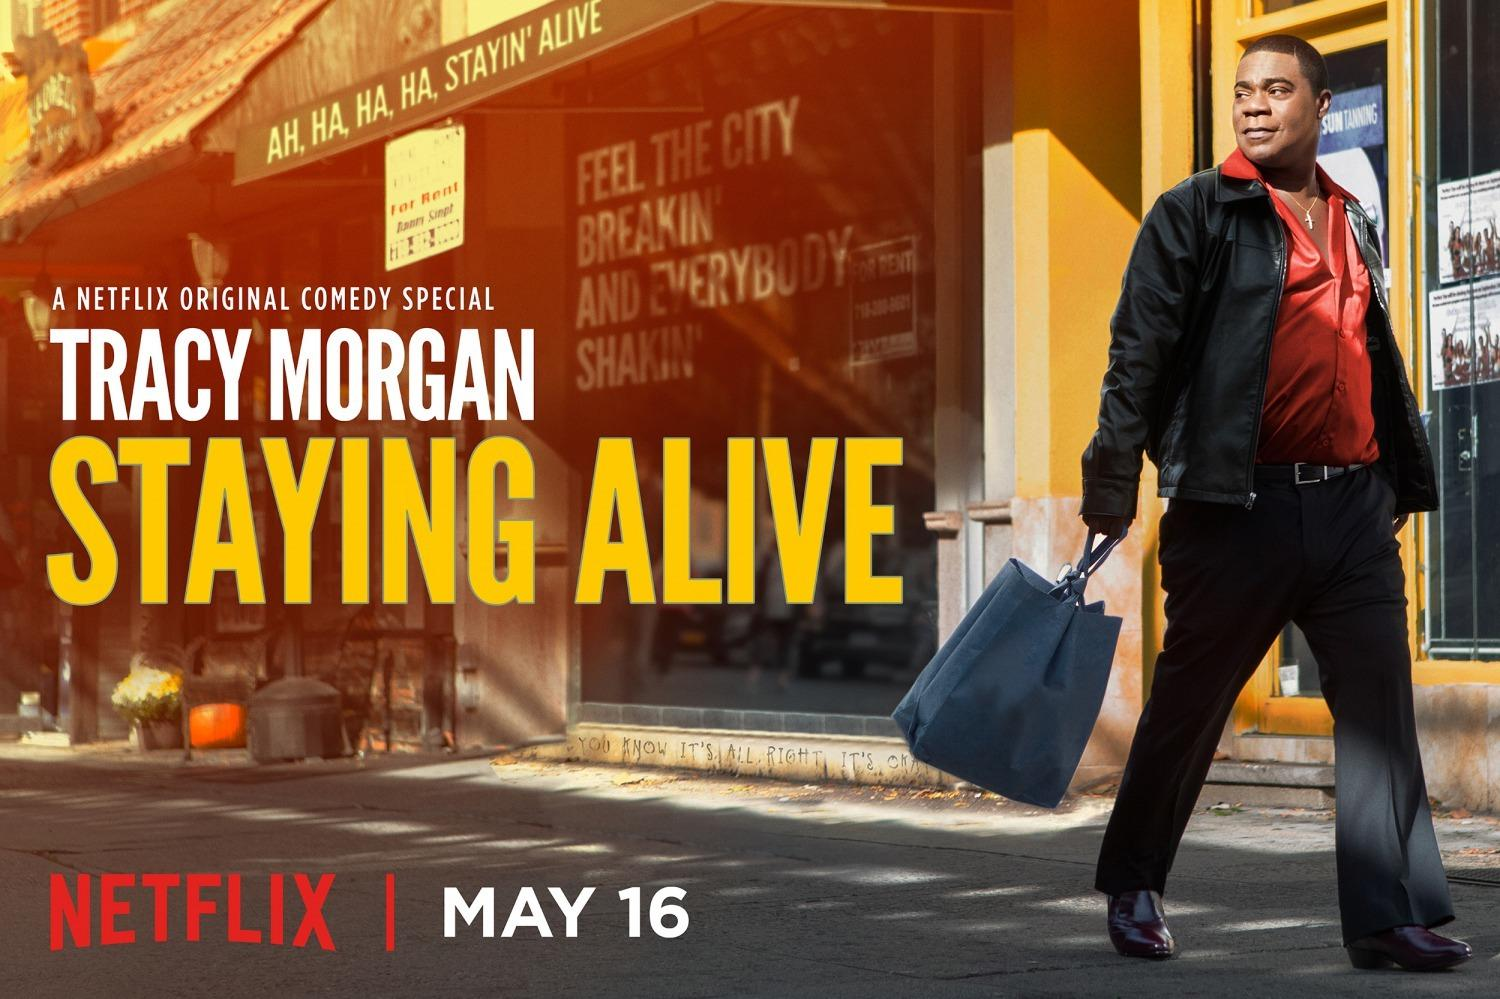 مشاهدة فيلم Tracy Morgan Staying Alive (2017) مترجم HD اون لاين